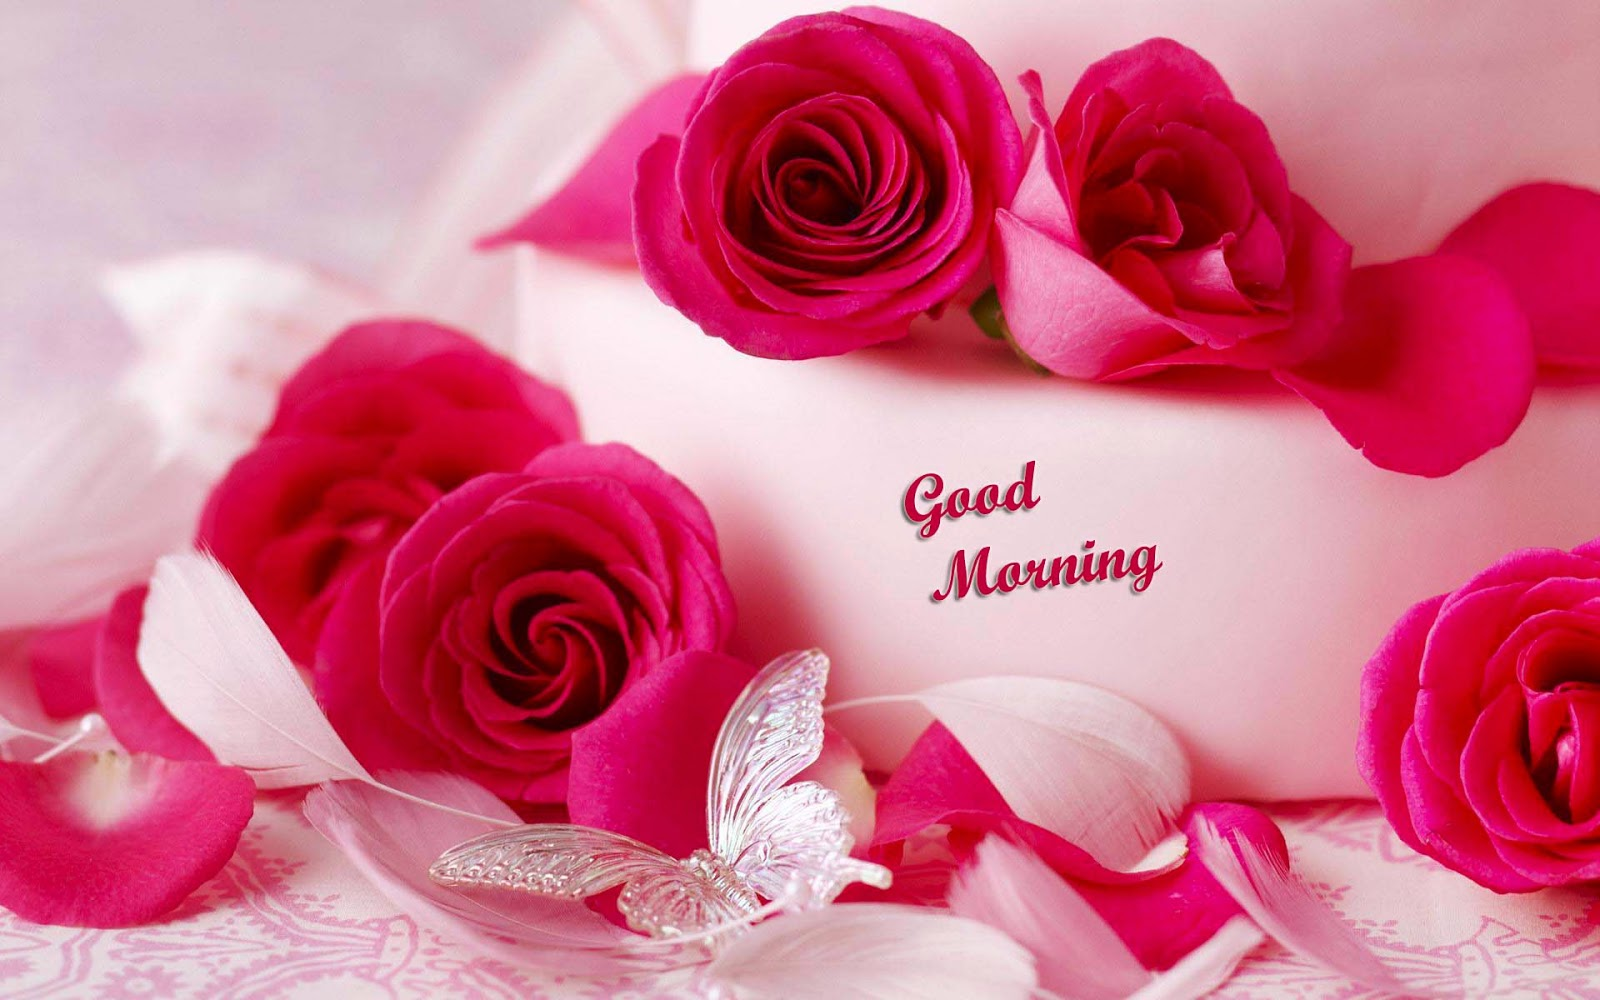 88 Lovely Romantic Couple Good Morning Wallpaper Gratis